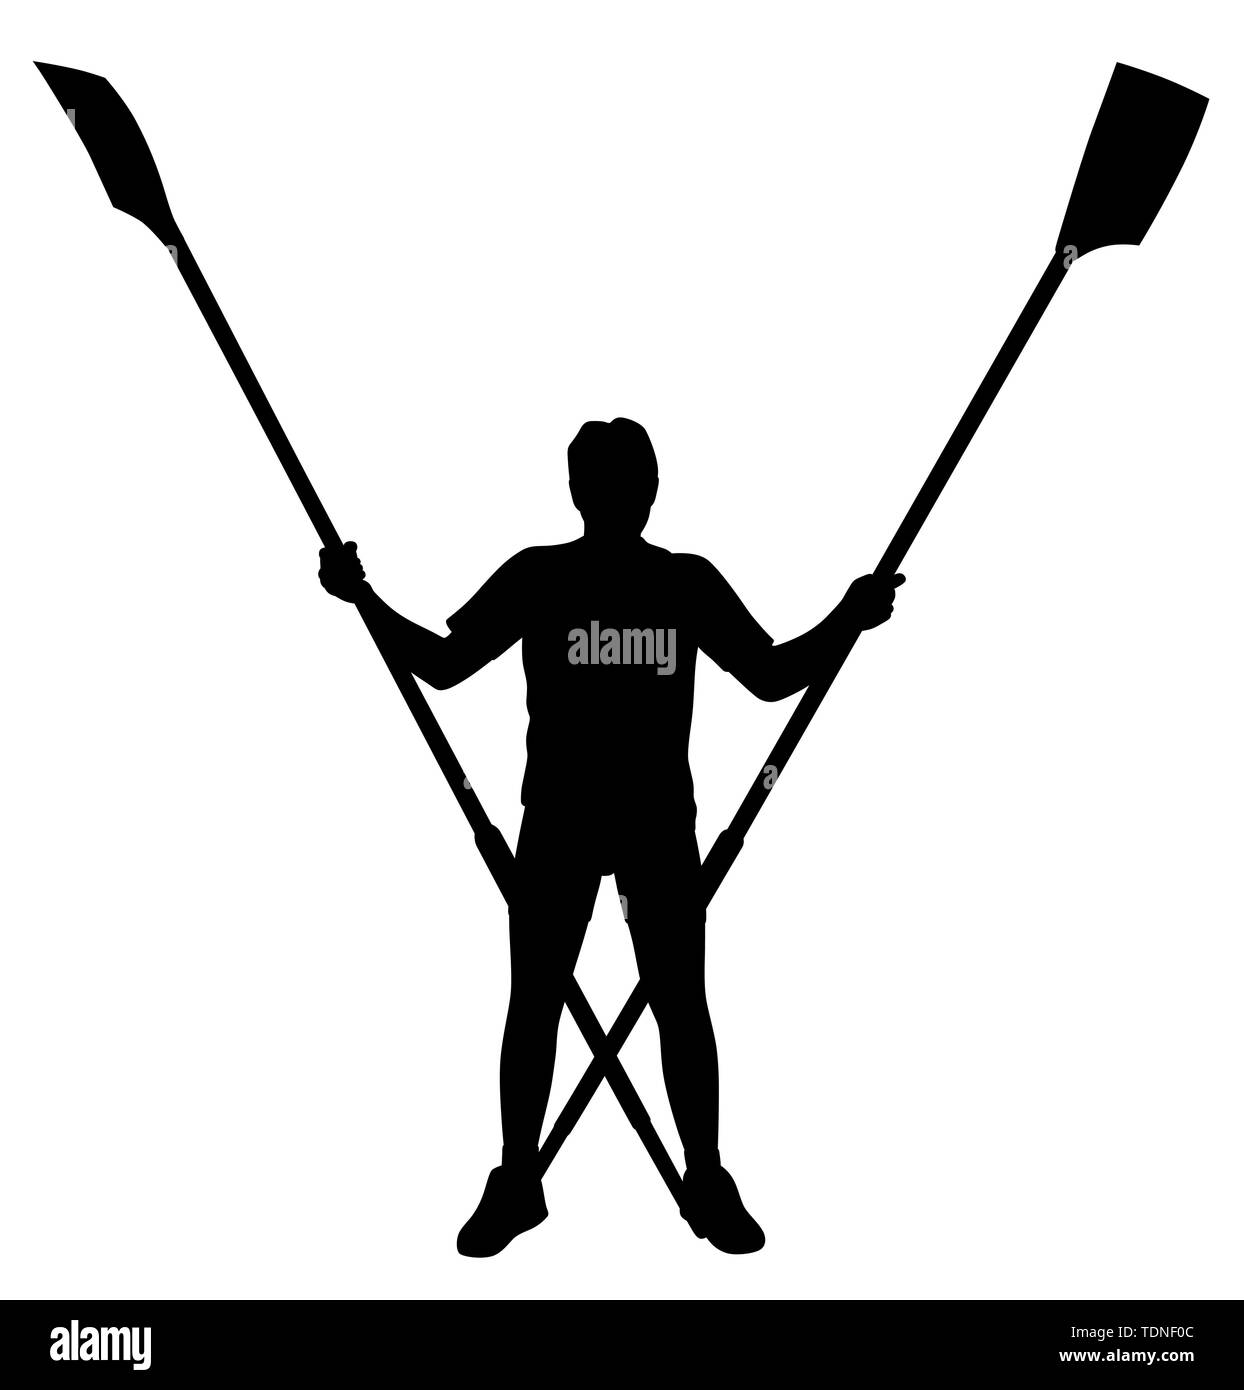 Illustration silhouette of a male rower standing with crossed rowing oars. Isolated white background. EPS file available. - Stock Image